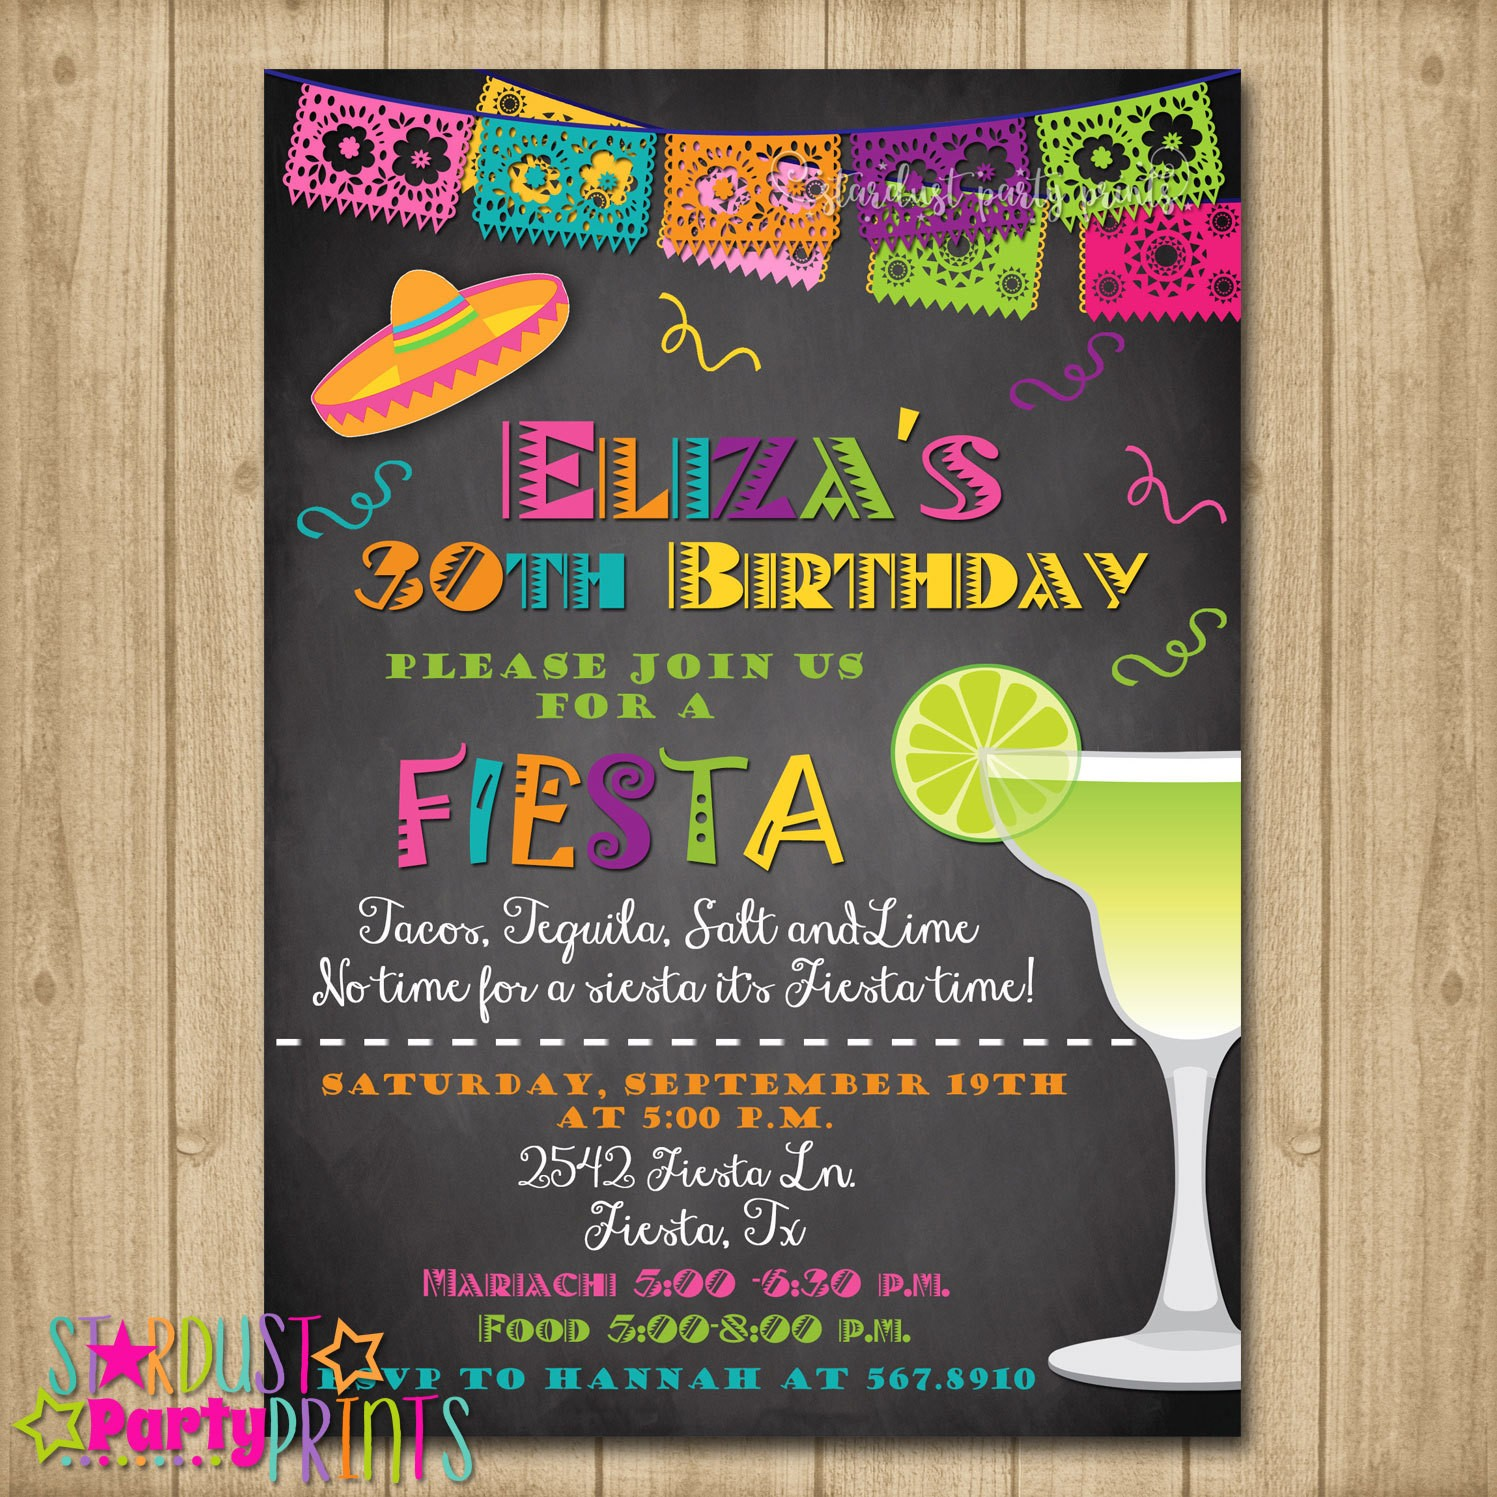 fiesta birthday party invitation wording ; invitation-wording-for-mexican-party-valid-fiesta-party-invitations-sansalvaje-of-invitation-wording-for-mexican-party